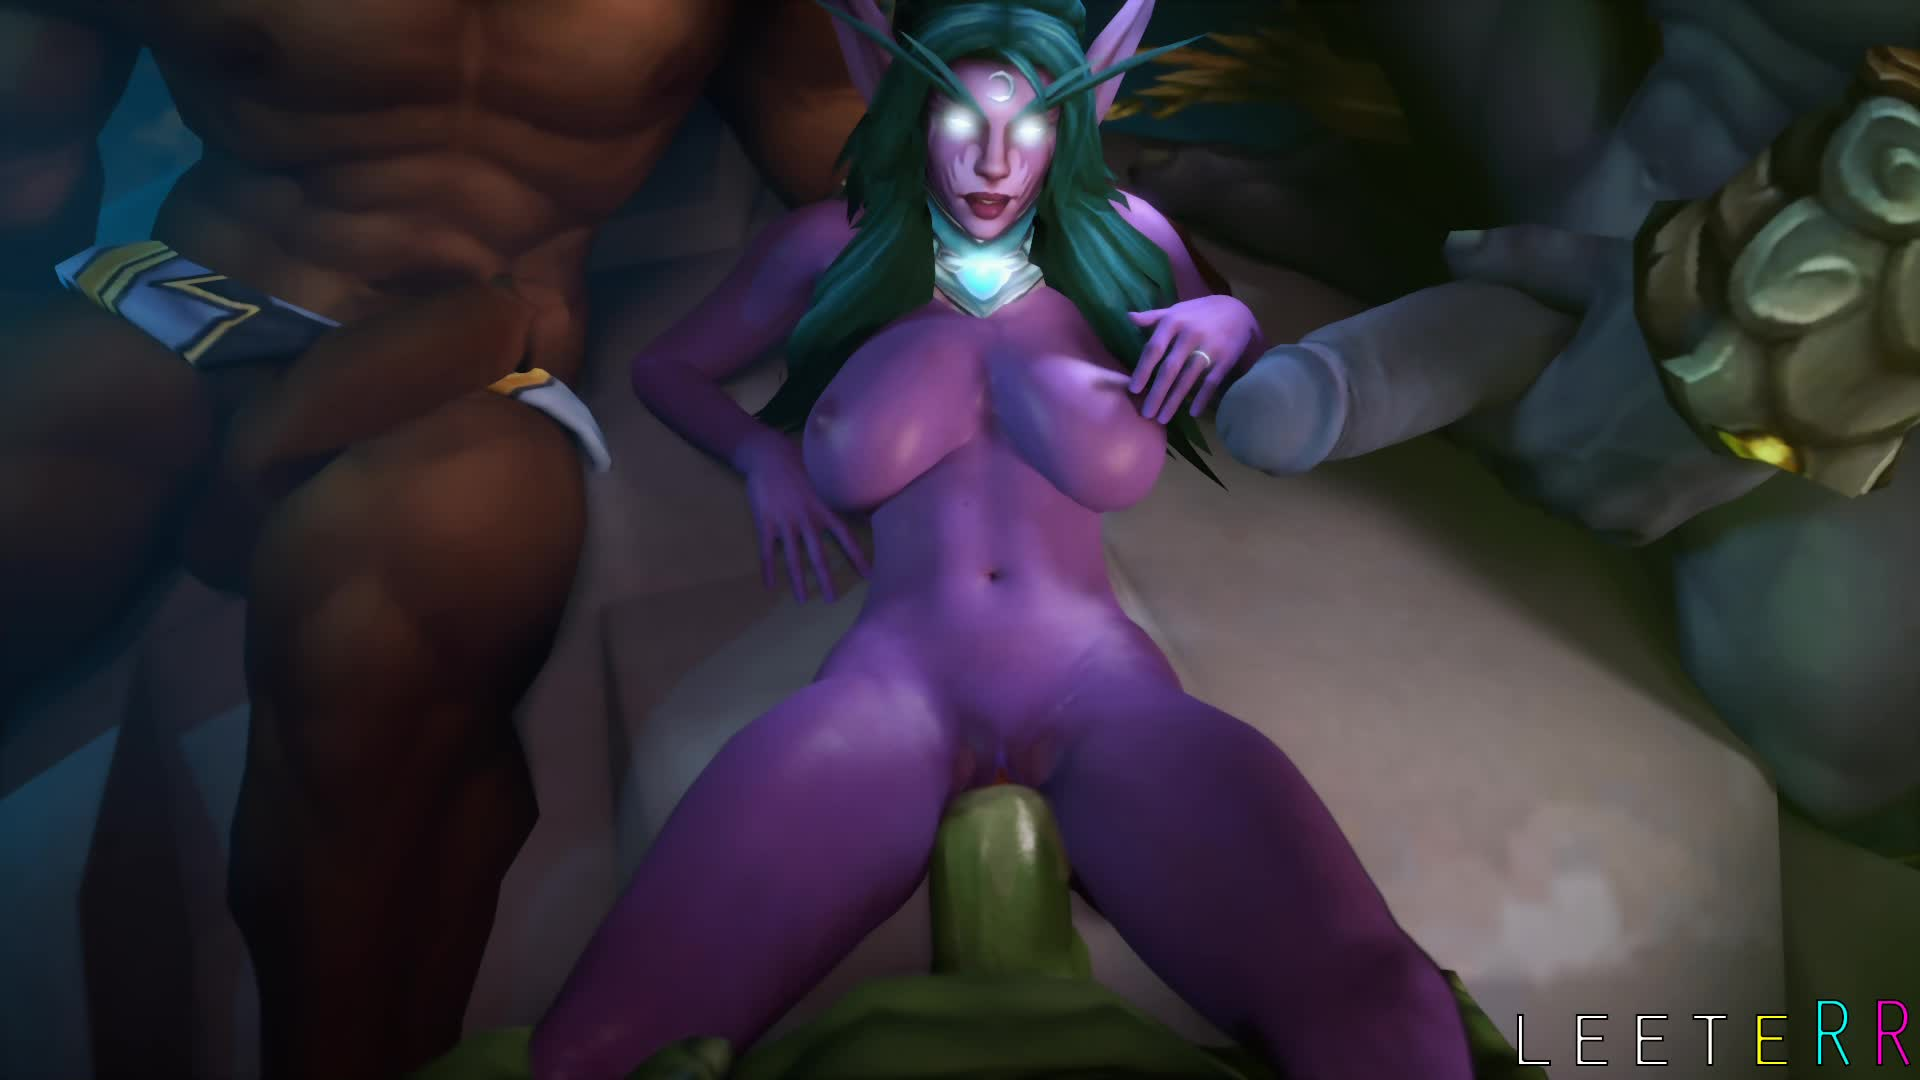 Warcraft 3 boy sex naked photos